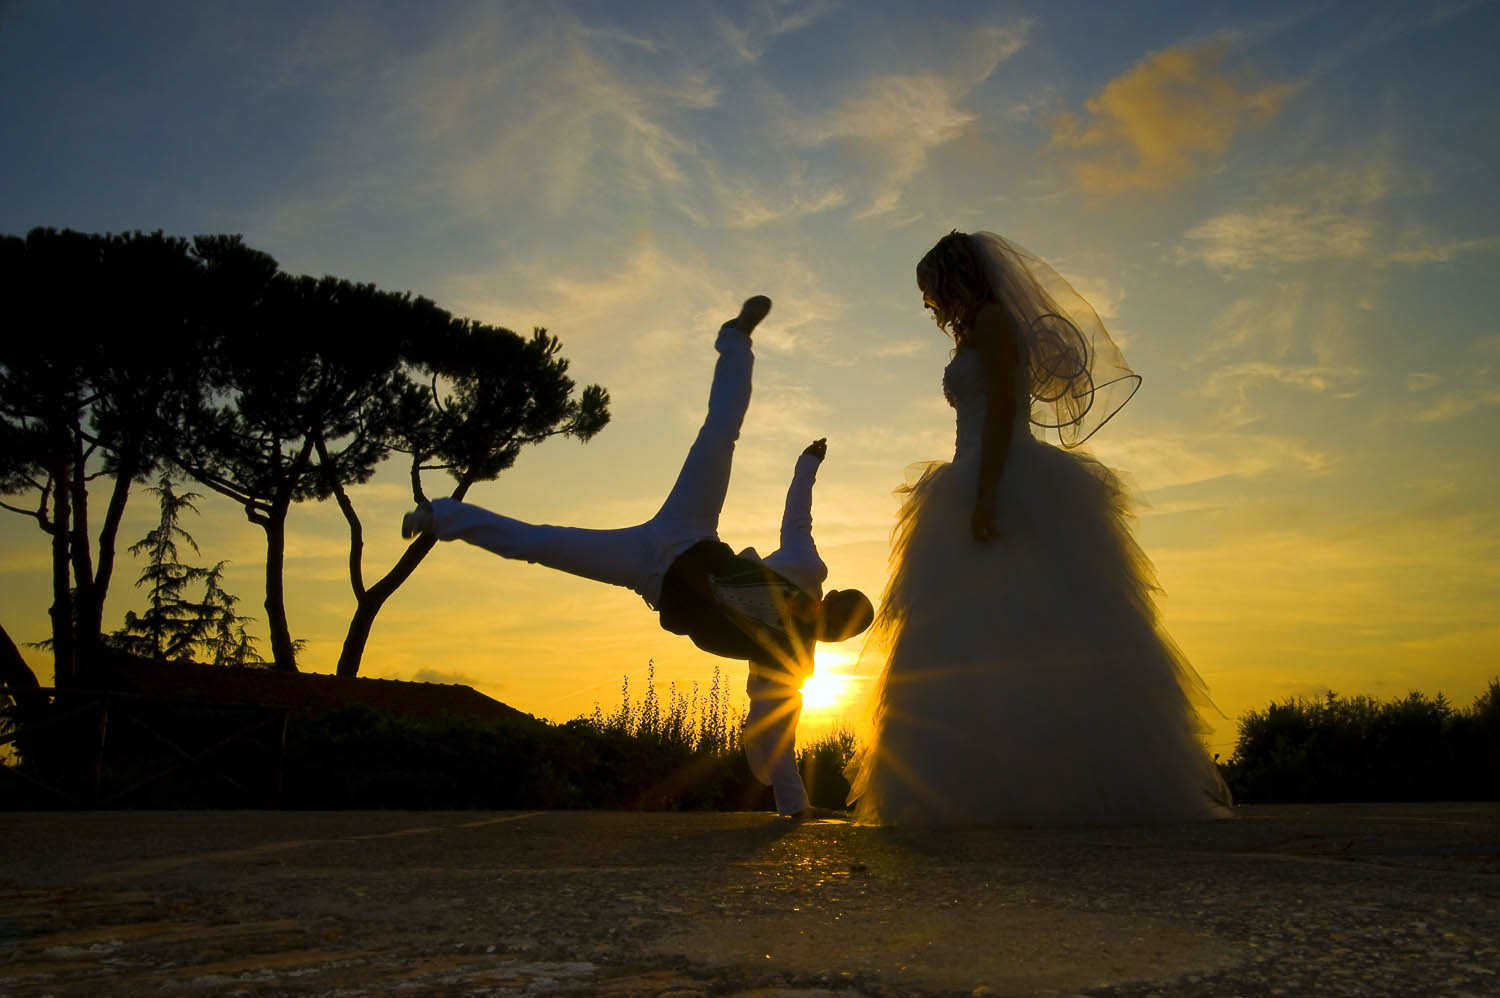 Wedding photography session in Rome Italy Capoeira move